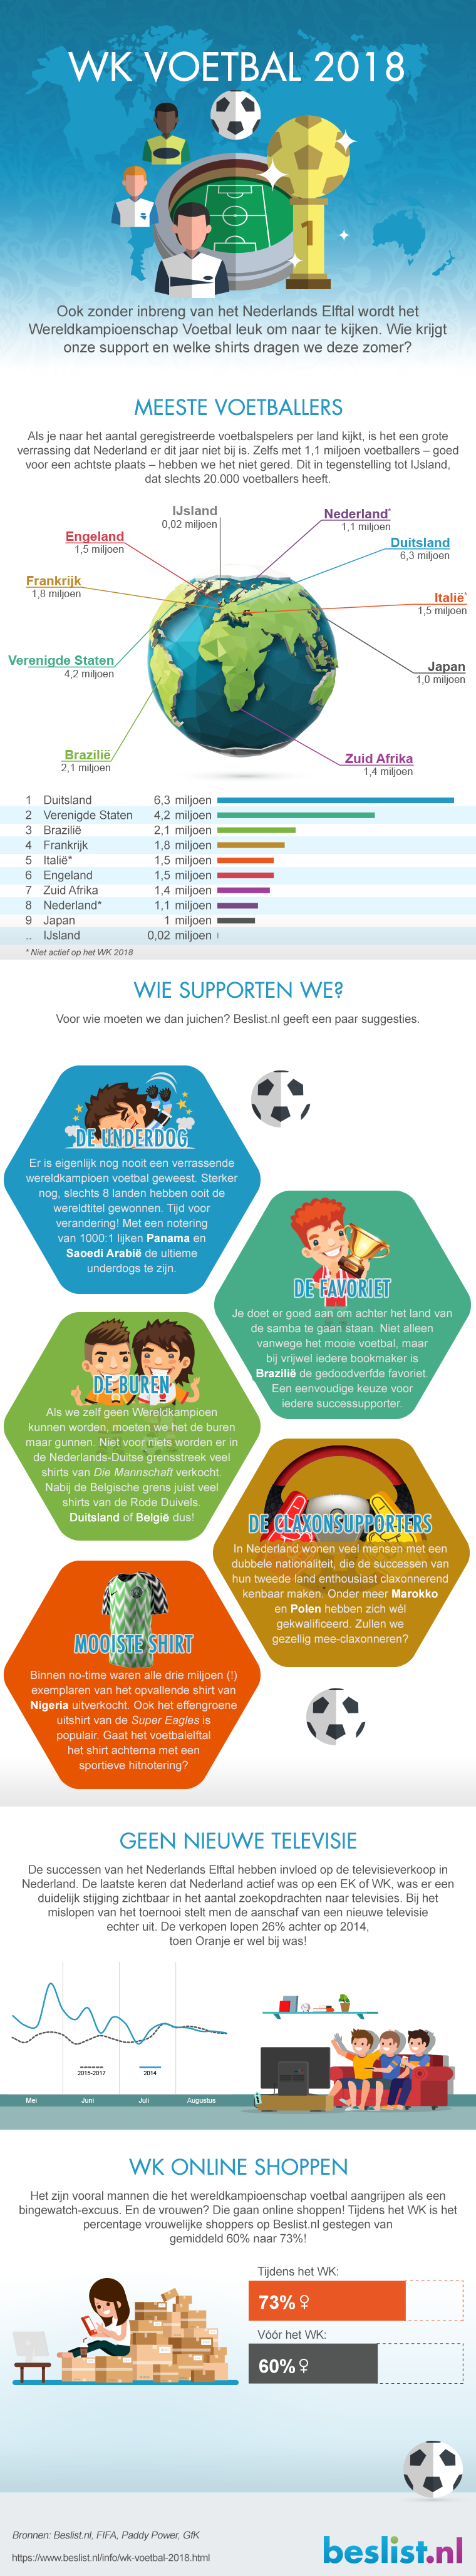 Infographic WK Voetbal 2018